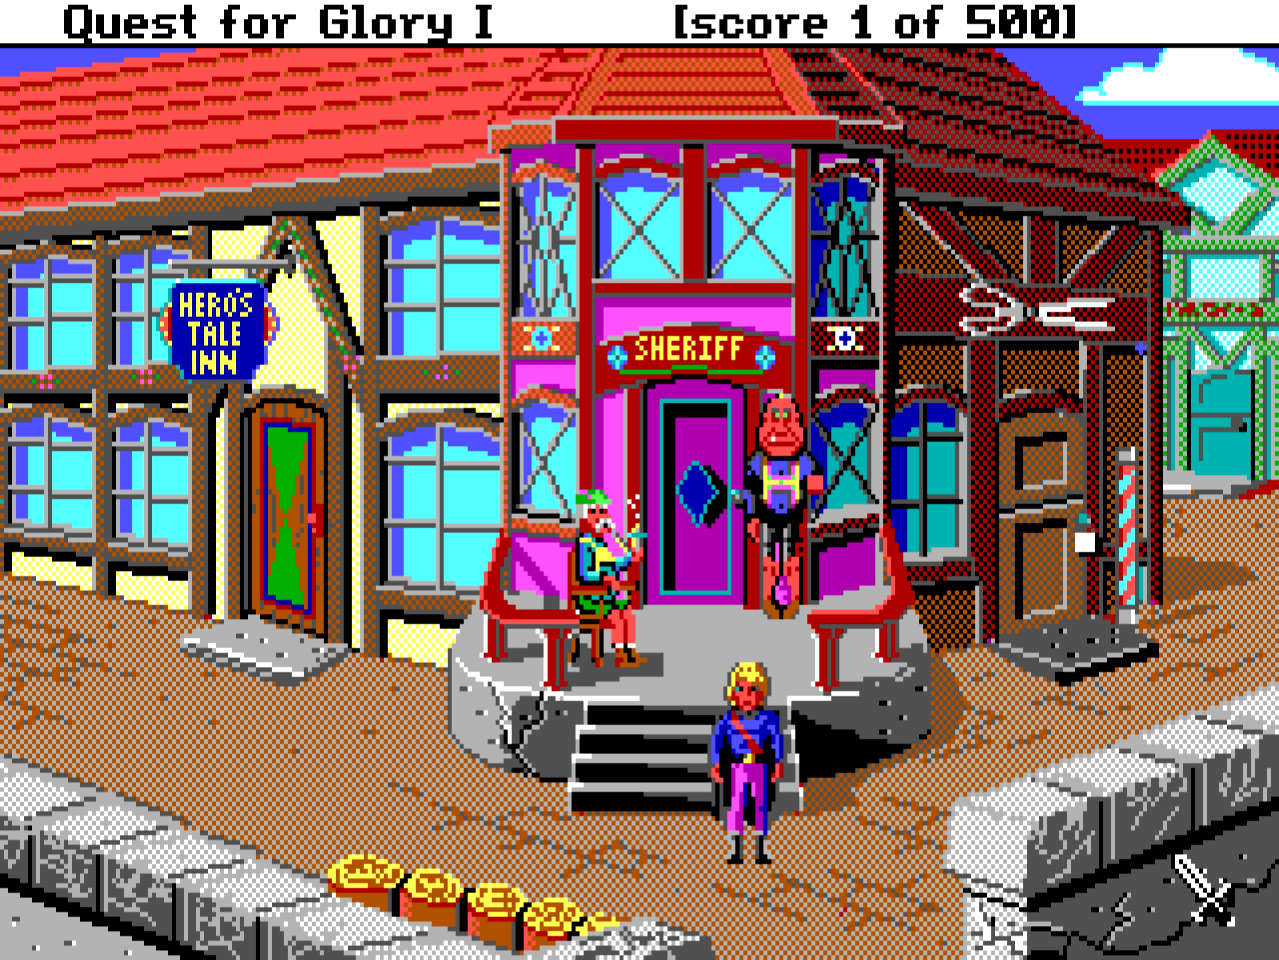 The Hero standing by the sheriff in EGA version